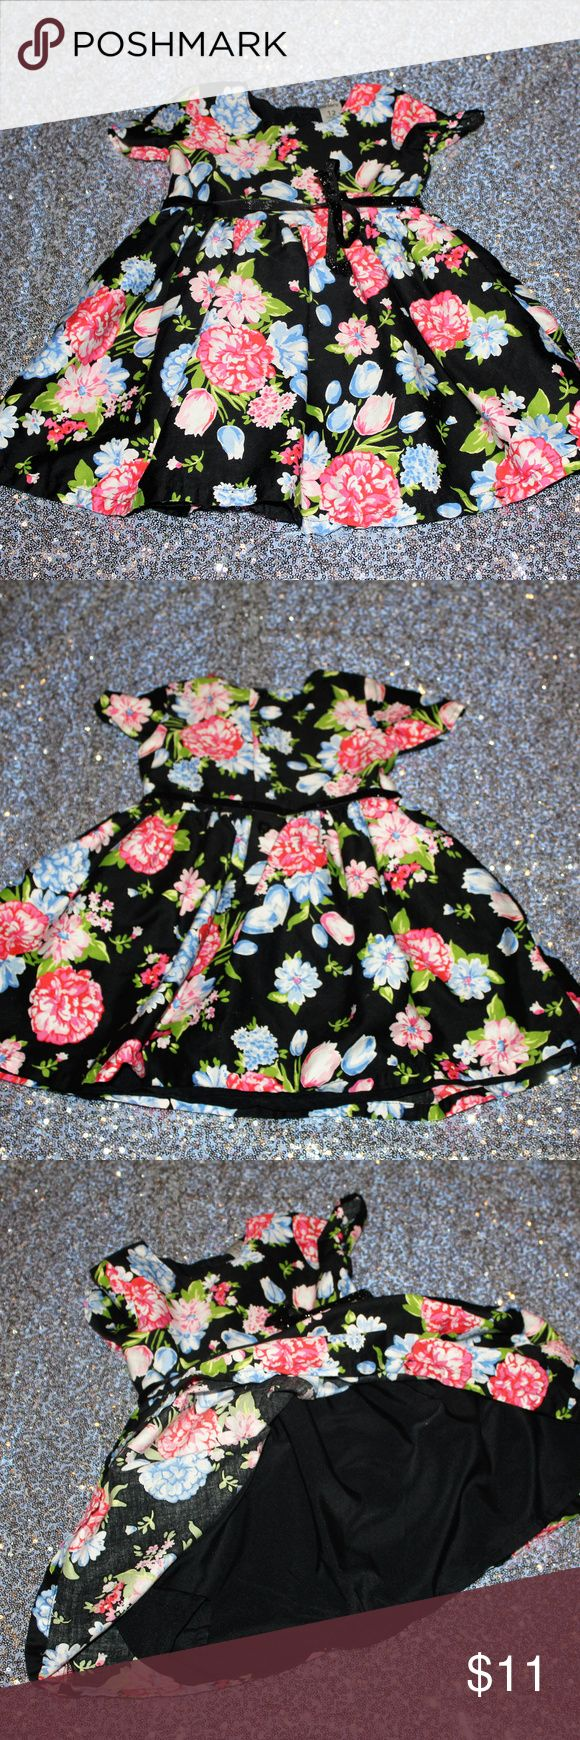 Carter's Flower Dress Size 12M This dress is lined. The glitter ribbon belt is a twisted and will need to be straightened and retied  *This item has been worn and will have signs of wear such as very slight fading. It is in very good used condition. Carter's Dresses Formal